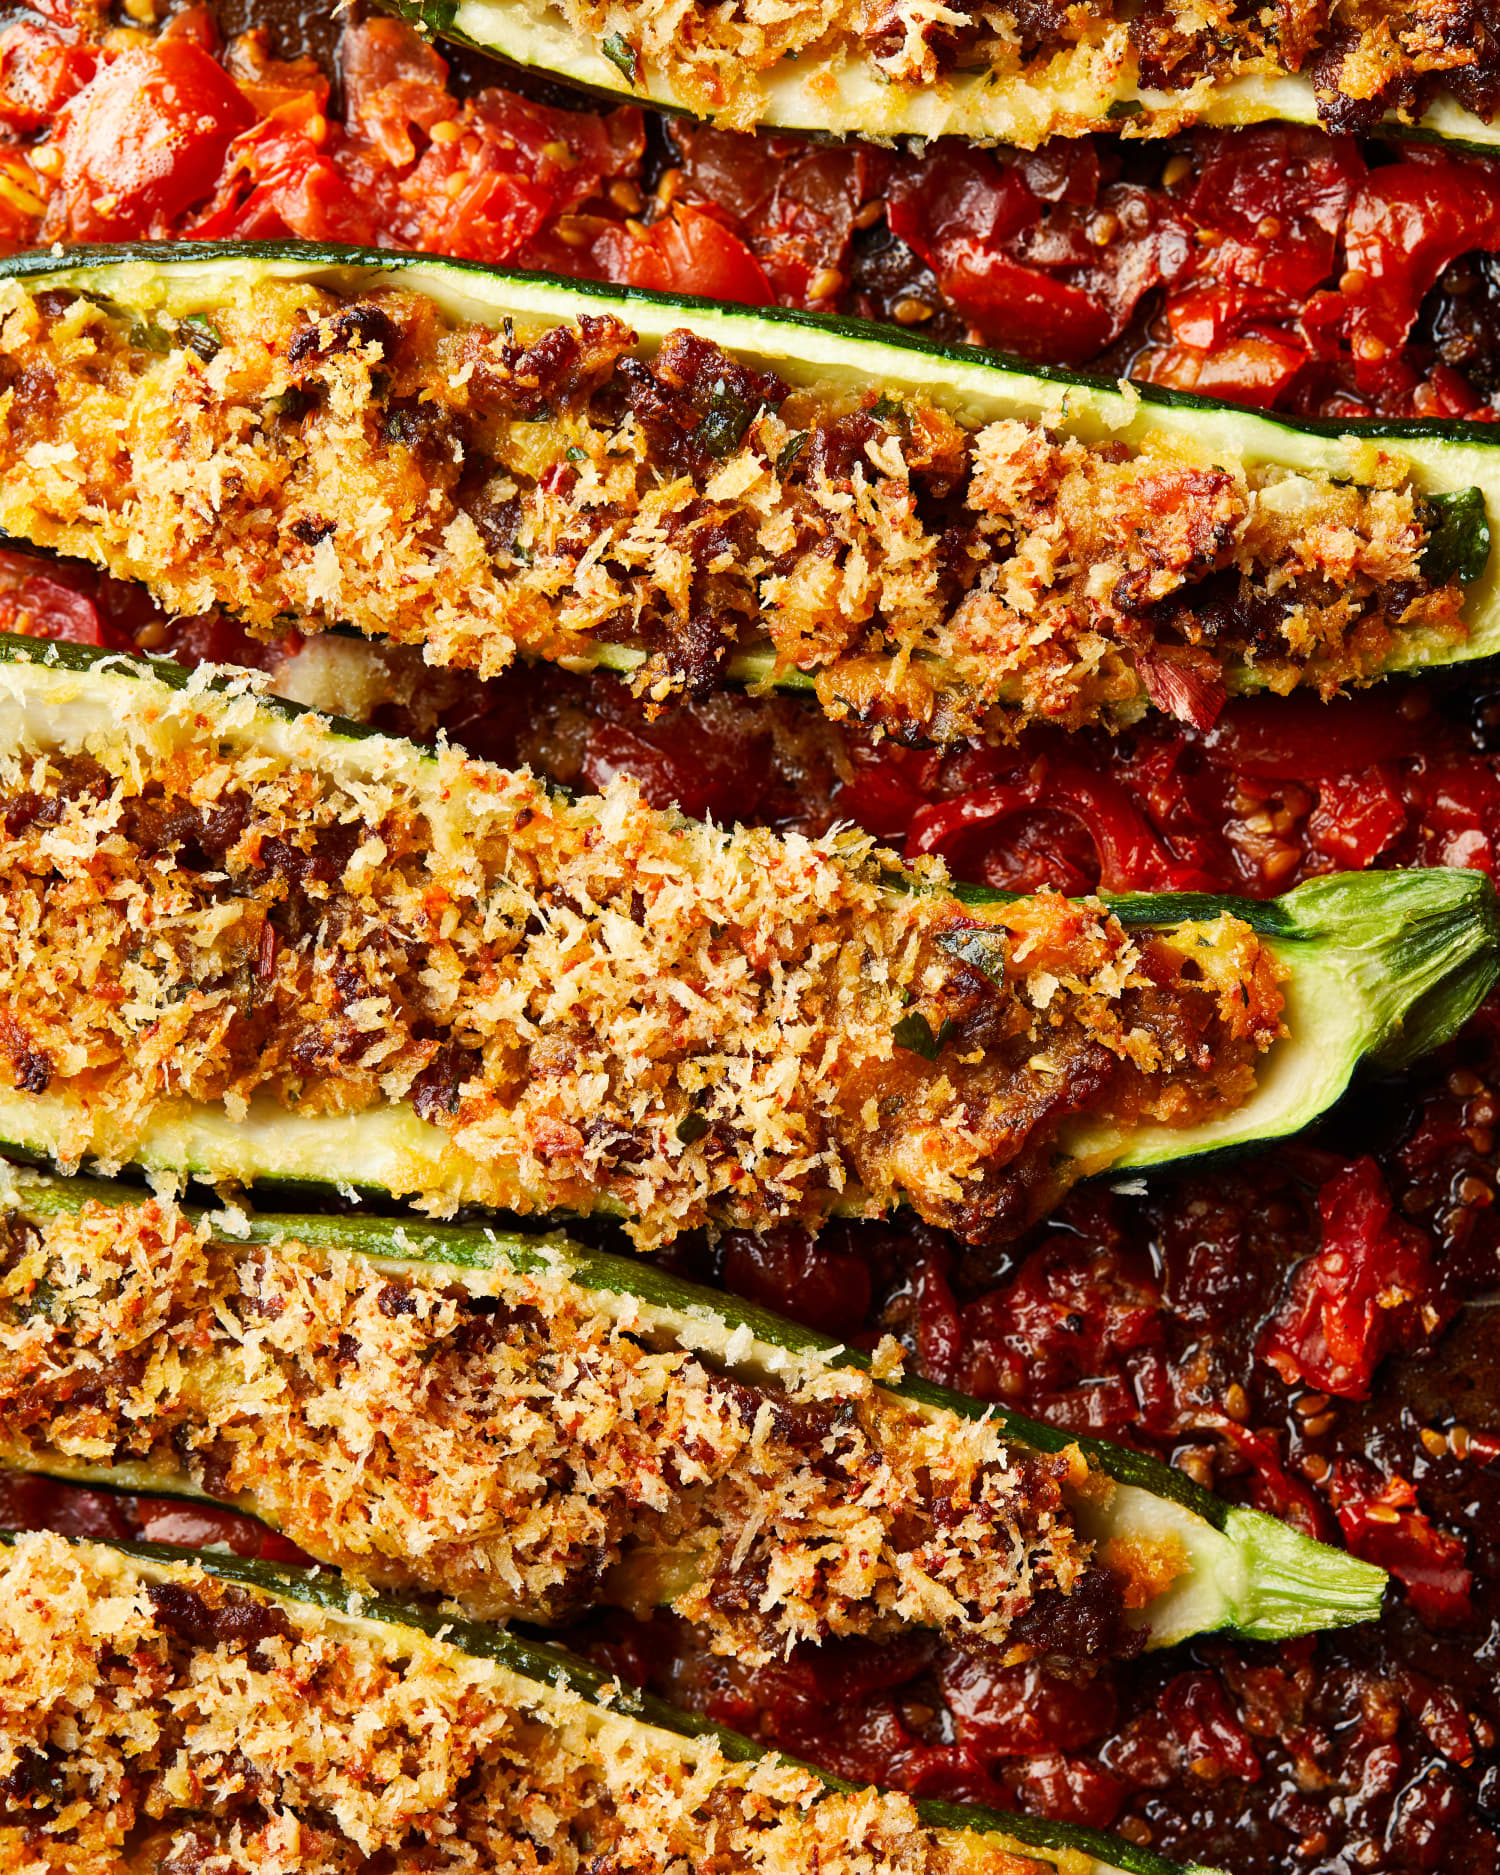 Sausage-Stuffed Zucchini Boats Are a Crispy, Saucy Summer Delight